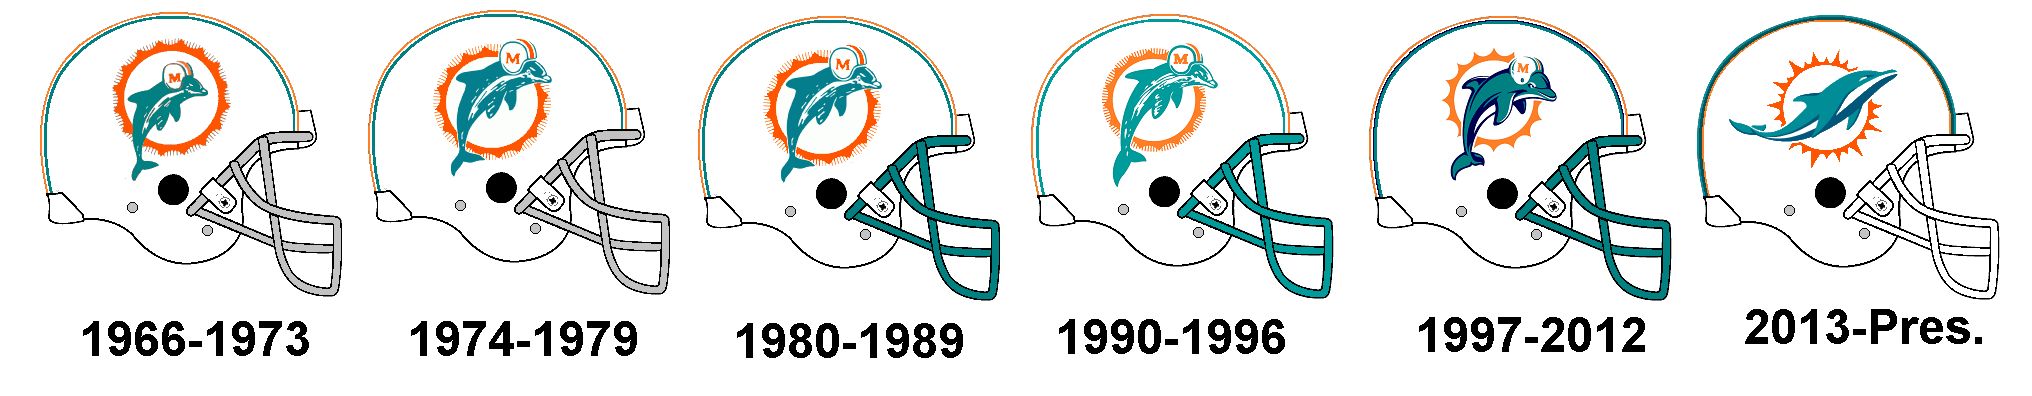 History of the Miami Dolphins helmets by Chenglor55 2032x396